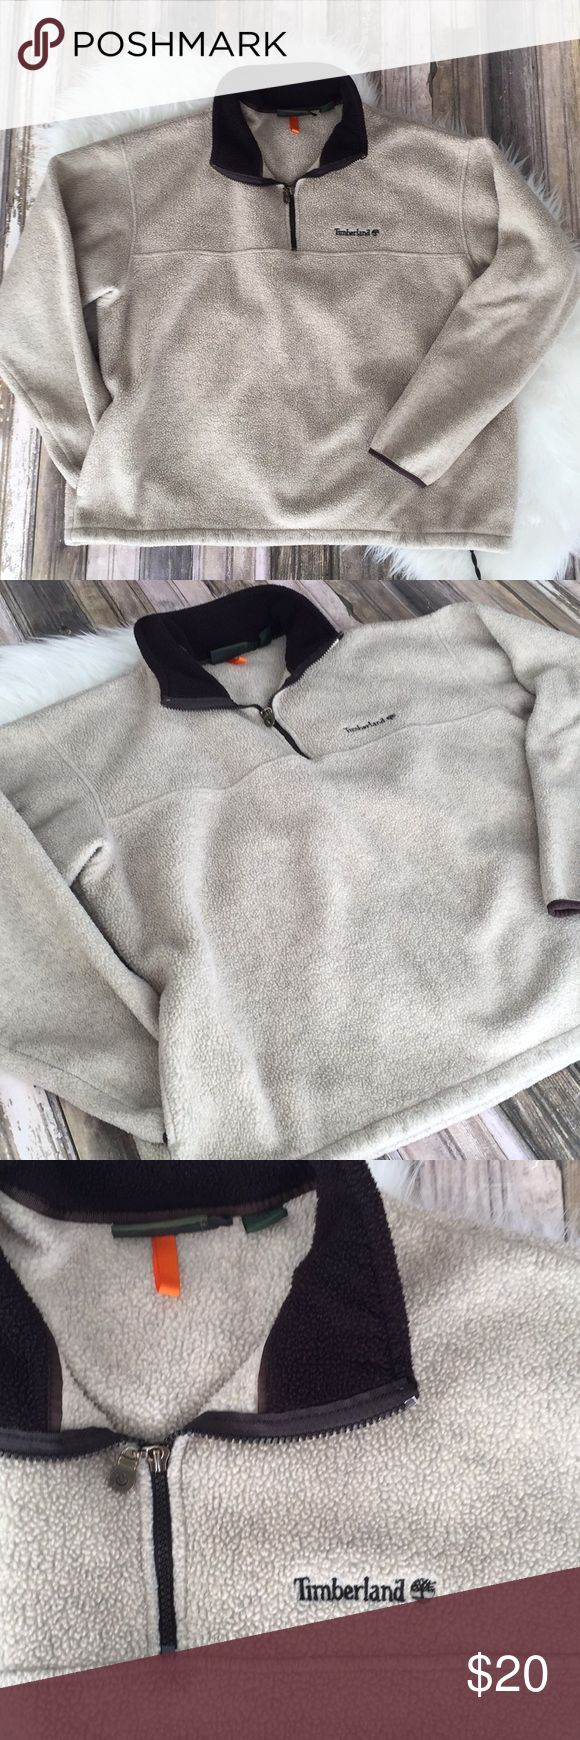 Mens timberland tan half zip fleece pull over Mens xl timberland half zip tan pullover. Please review photos for details and measurements. No trades Timberland Jackets & Coats